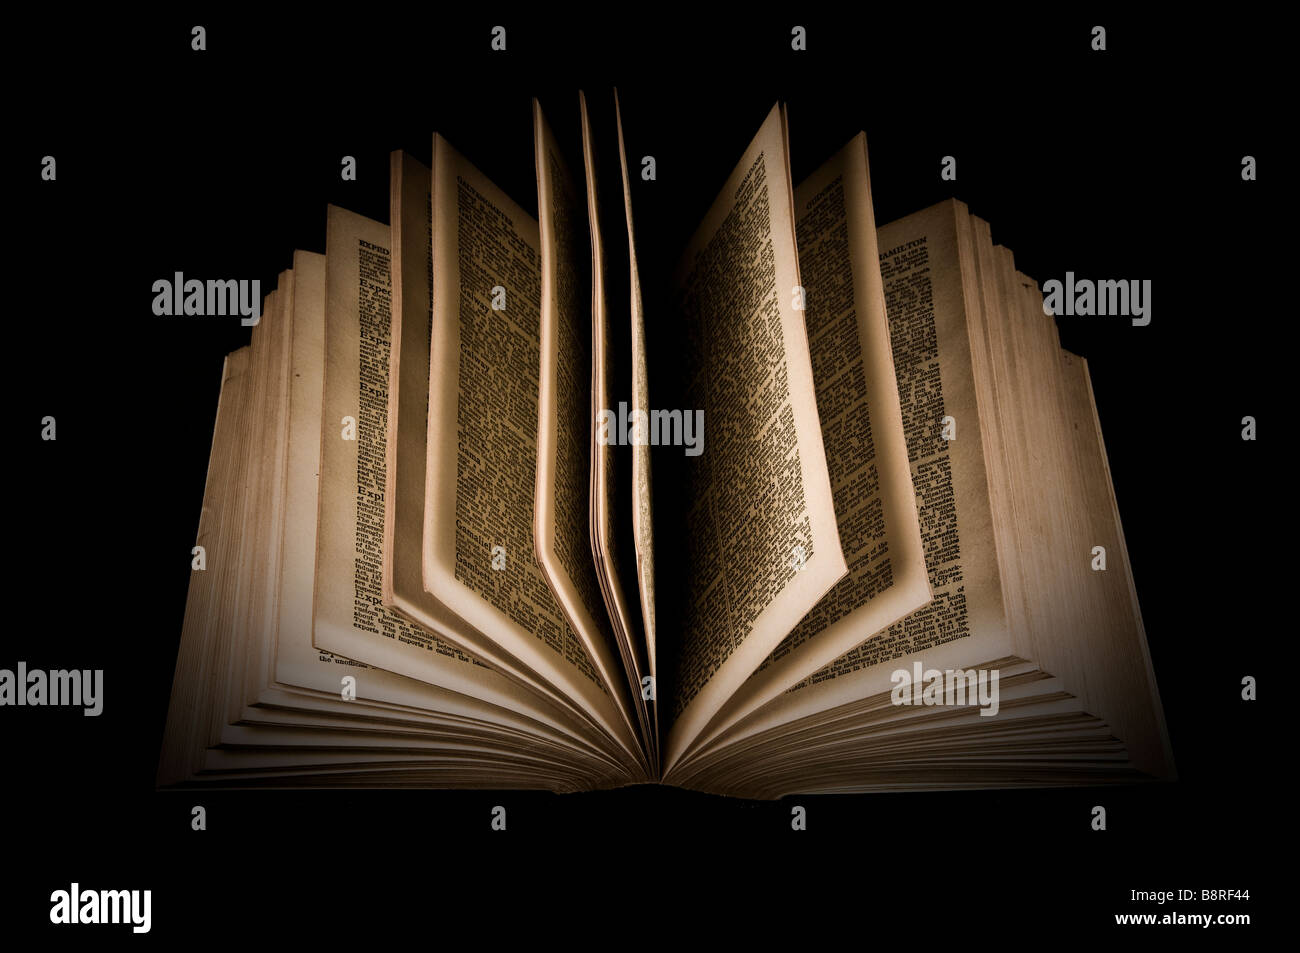 Old encyclopaedia lying open, black background - Stock Image